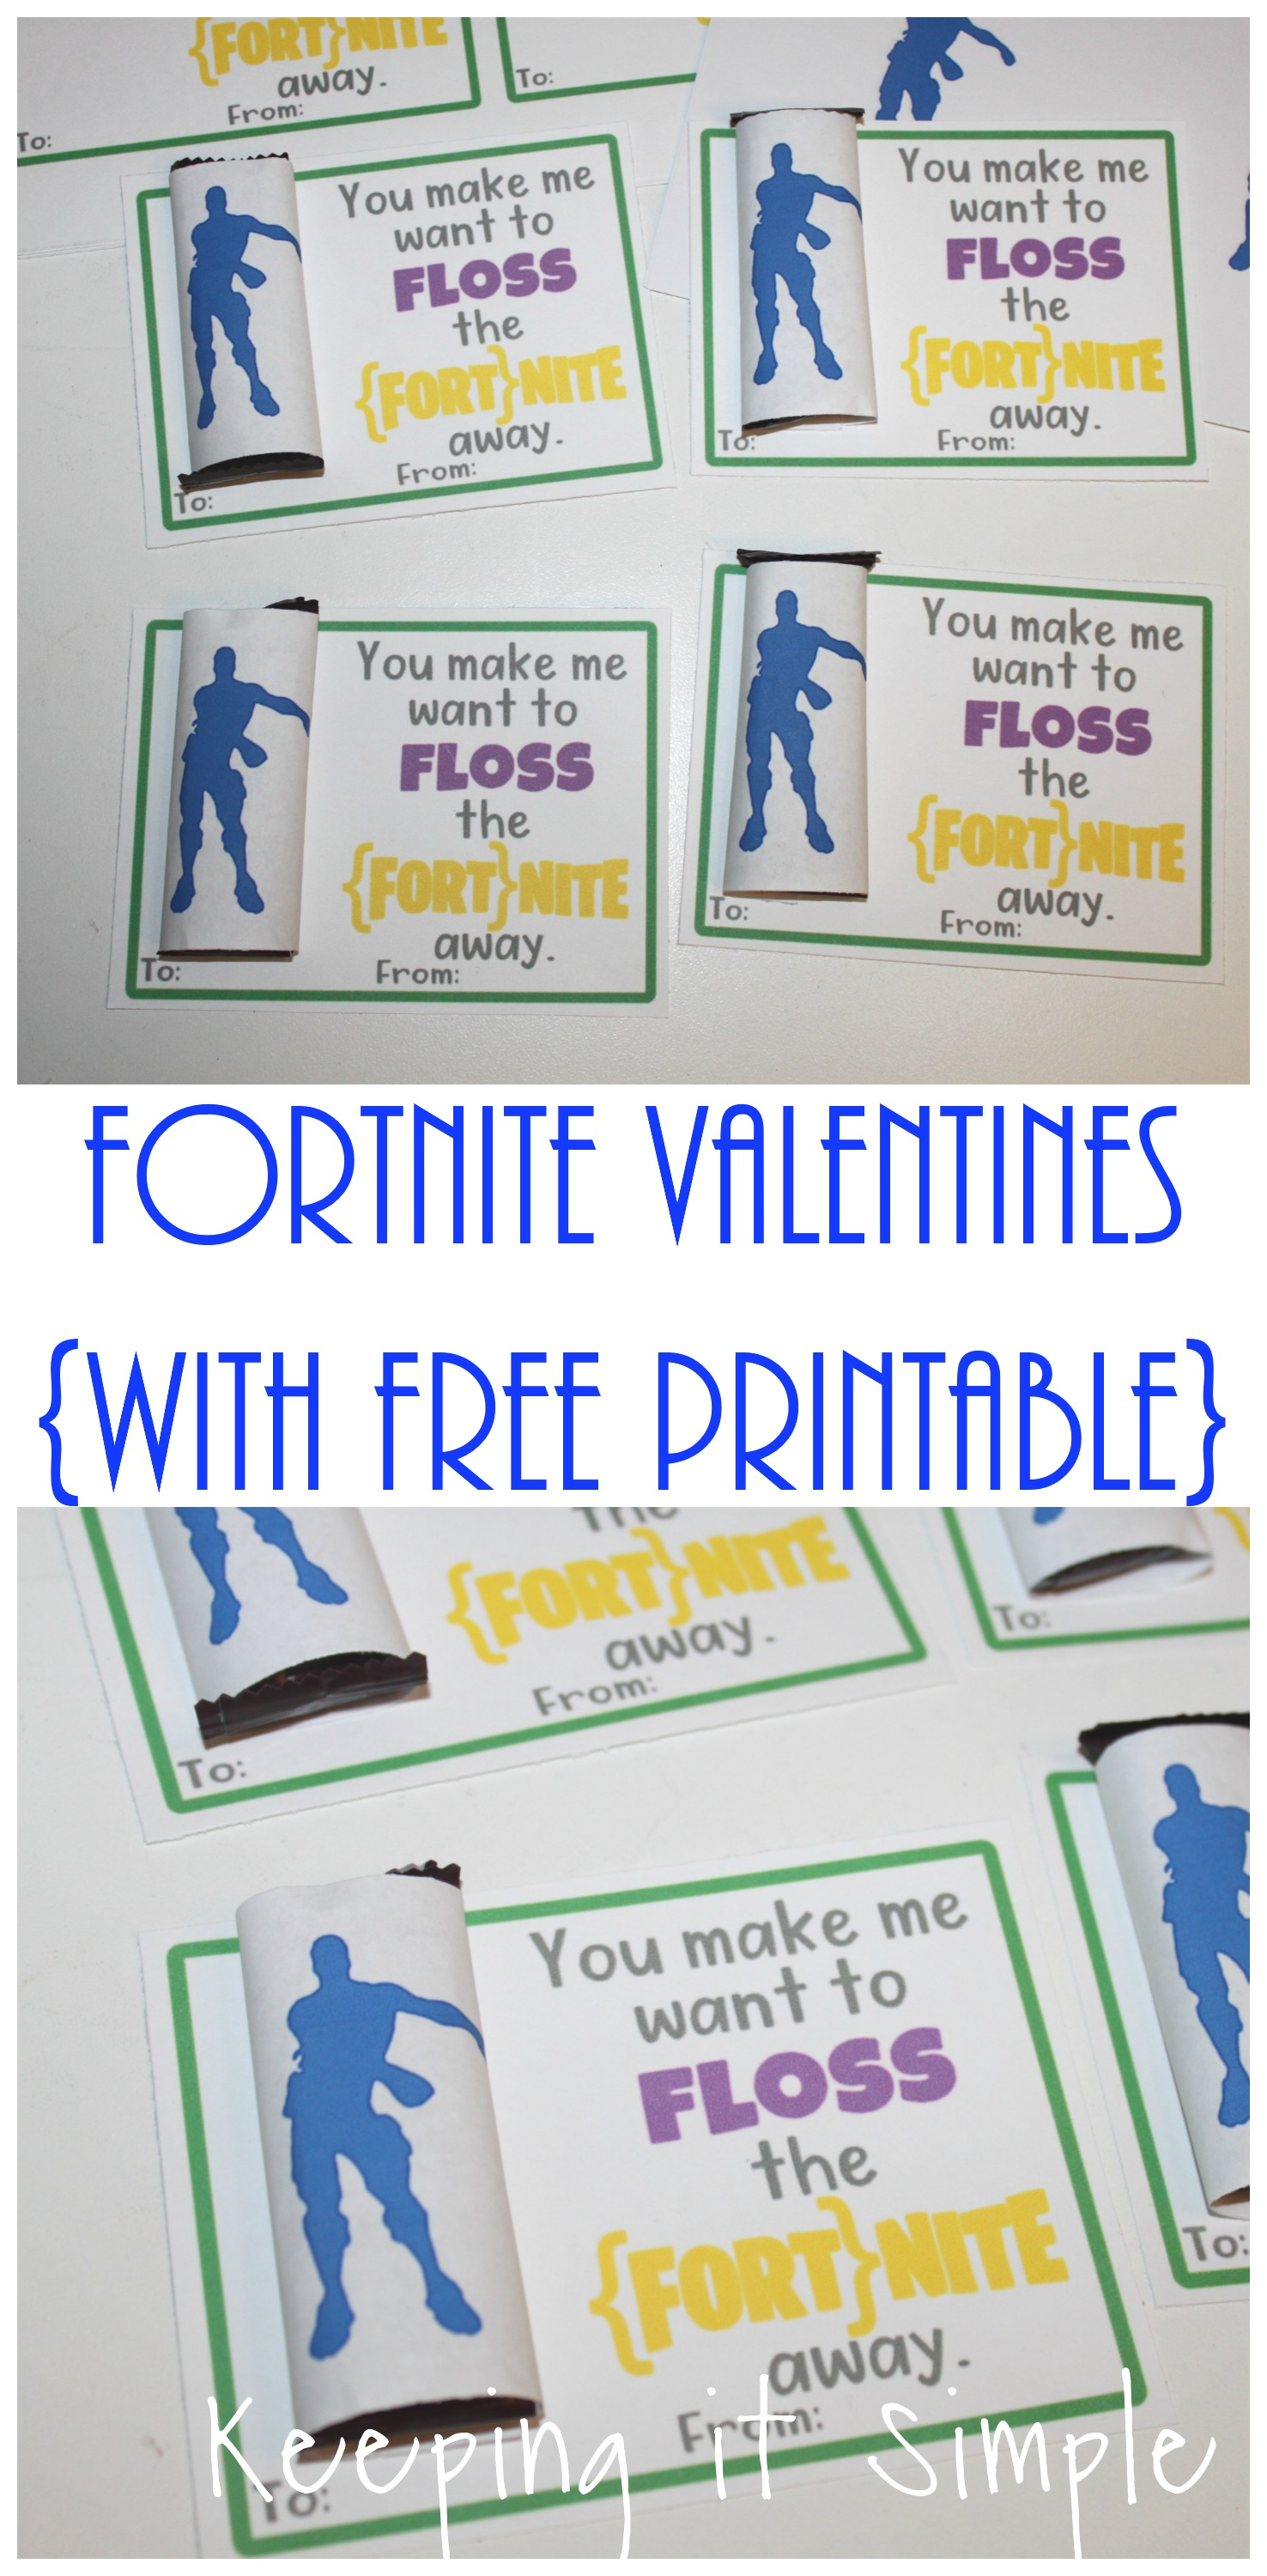 image regarding Free Valentine Printable referred to as Do-it-yourself Fortnite Valentines with Cost-free Printable Preserving